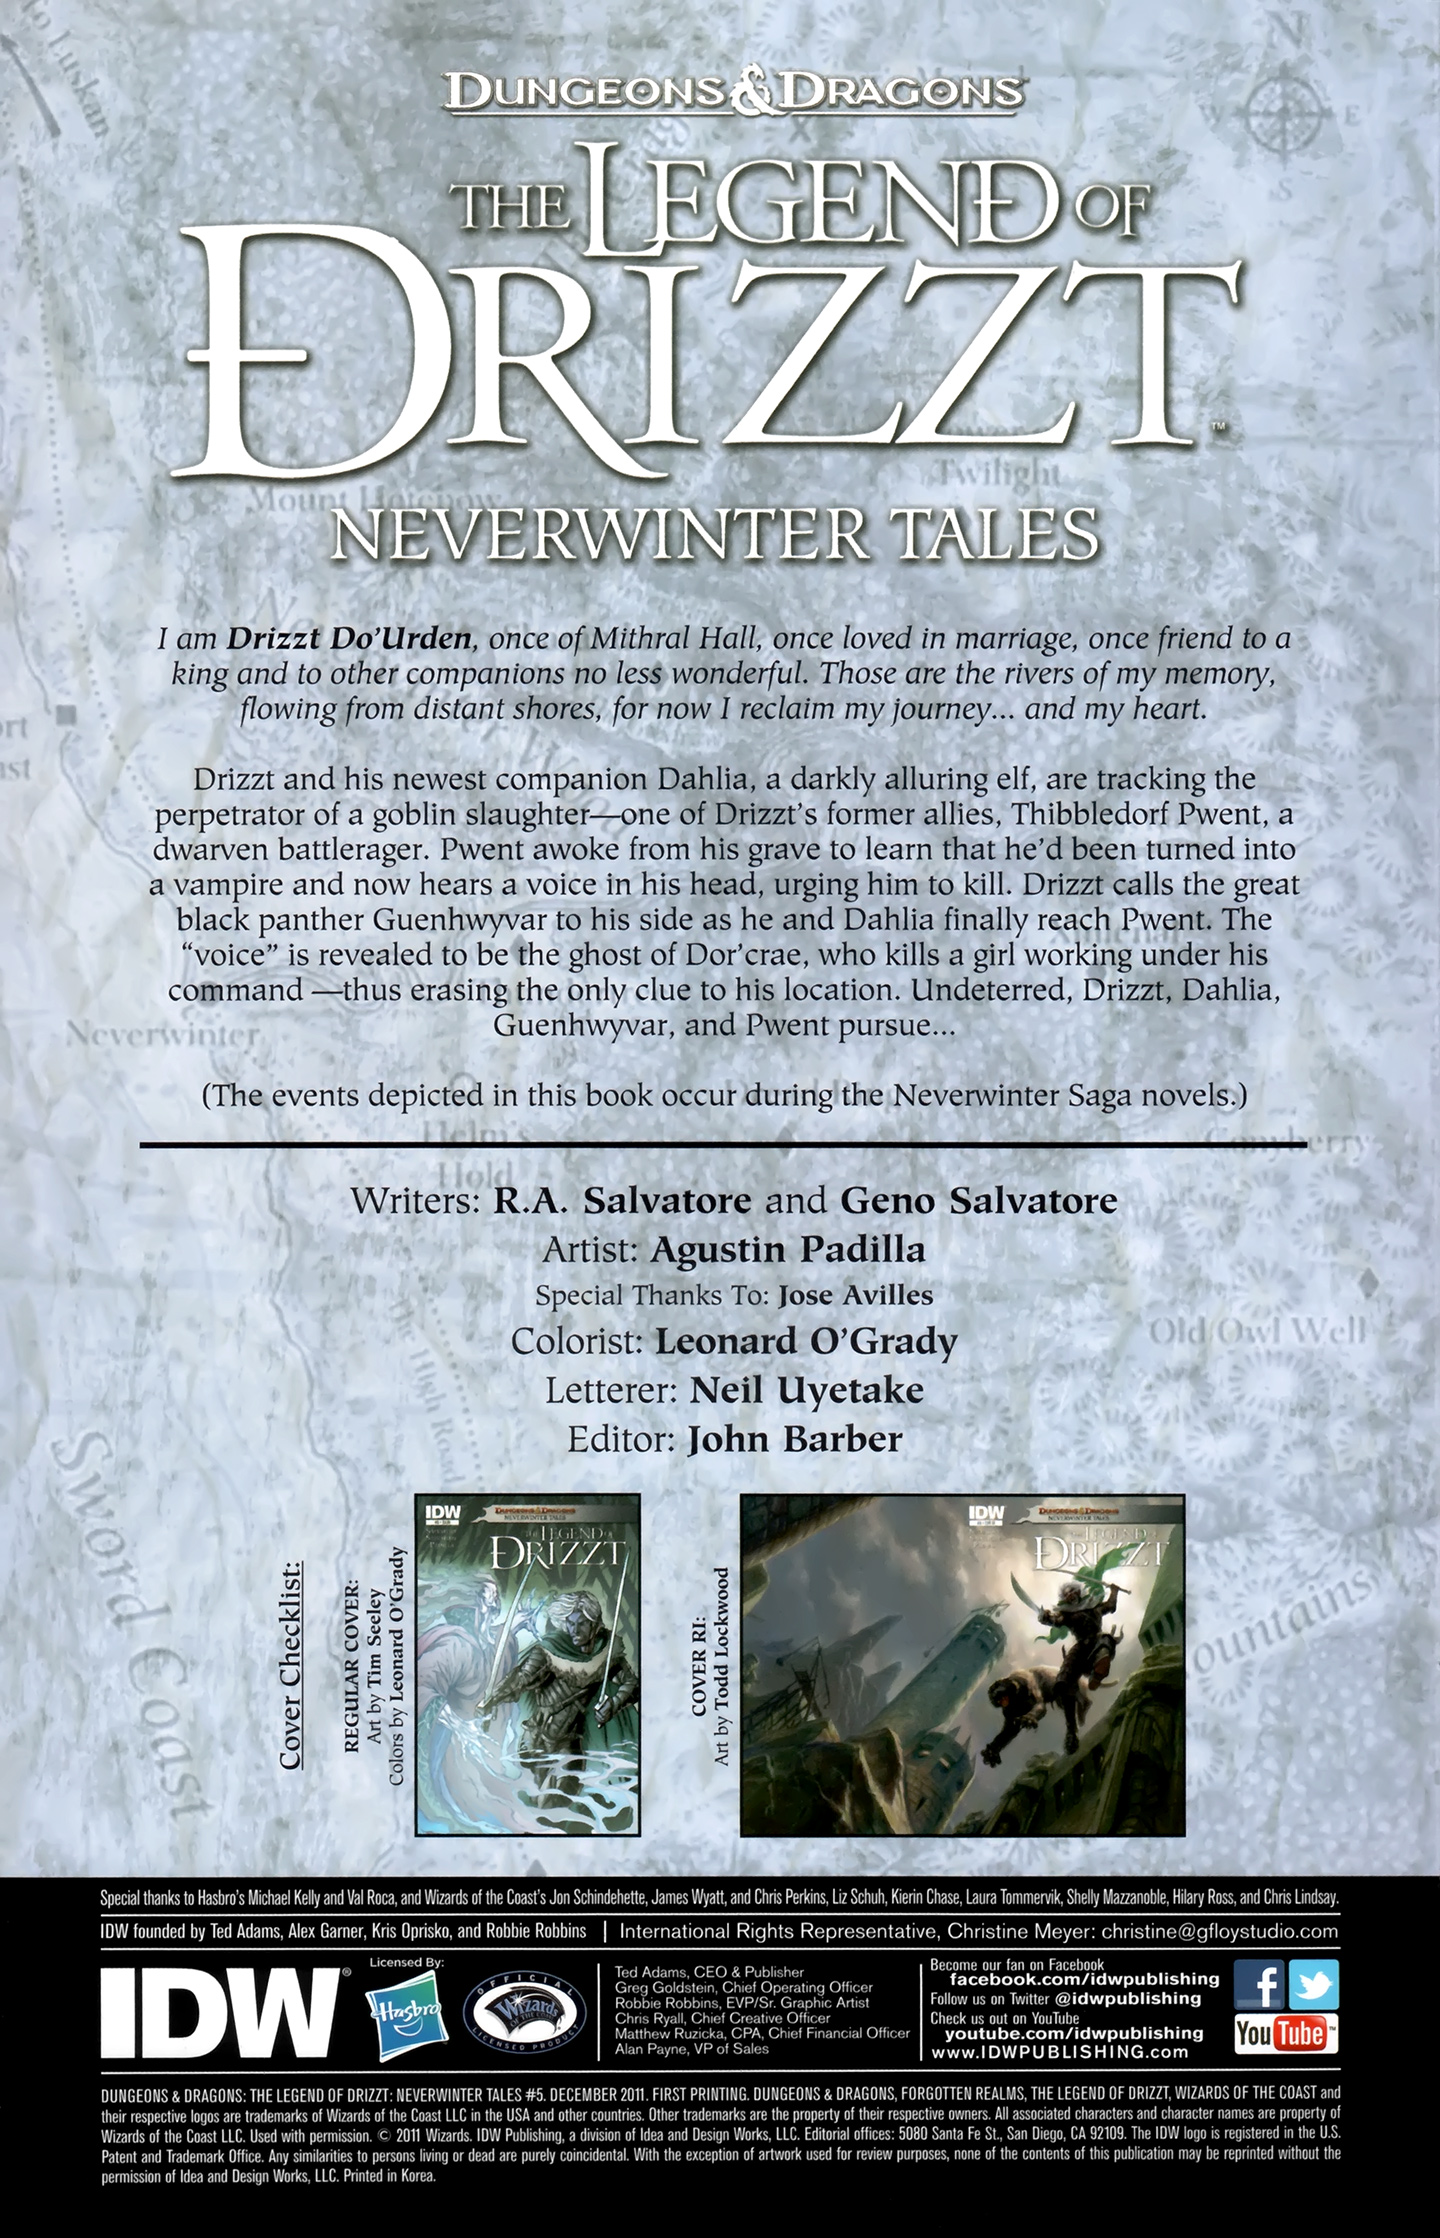 Dungeons & Dragons: The Legend of Drizzt: Neverwinter Tales 5 Page 2